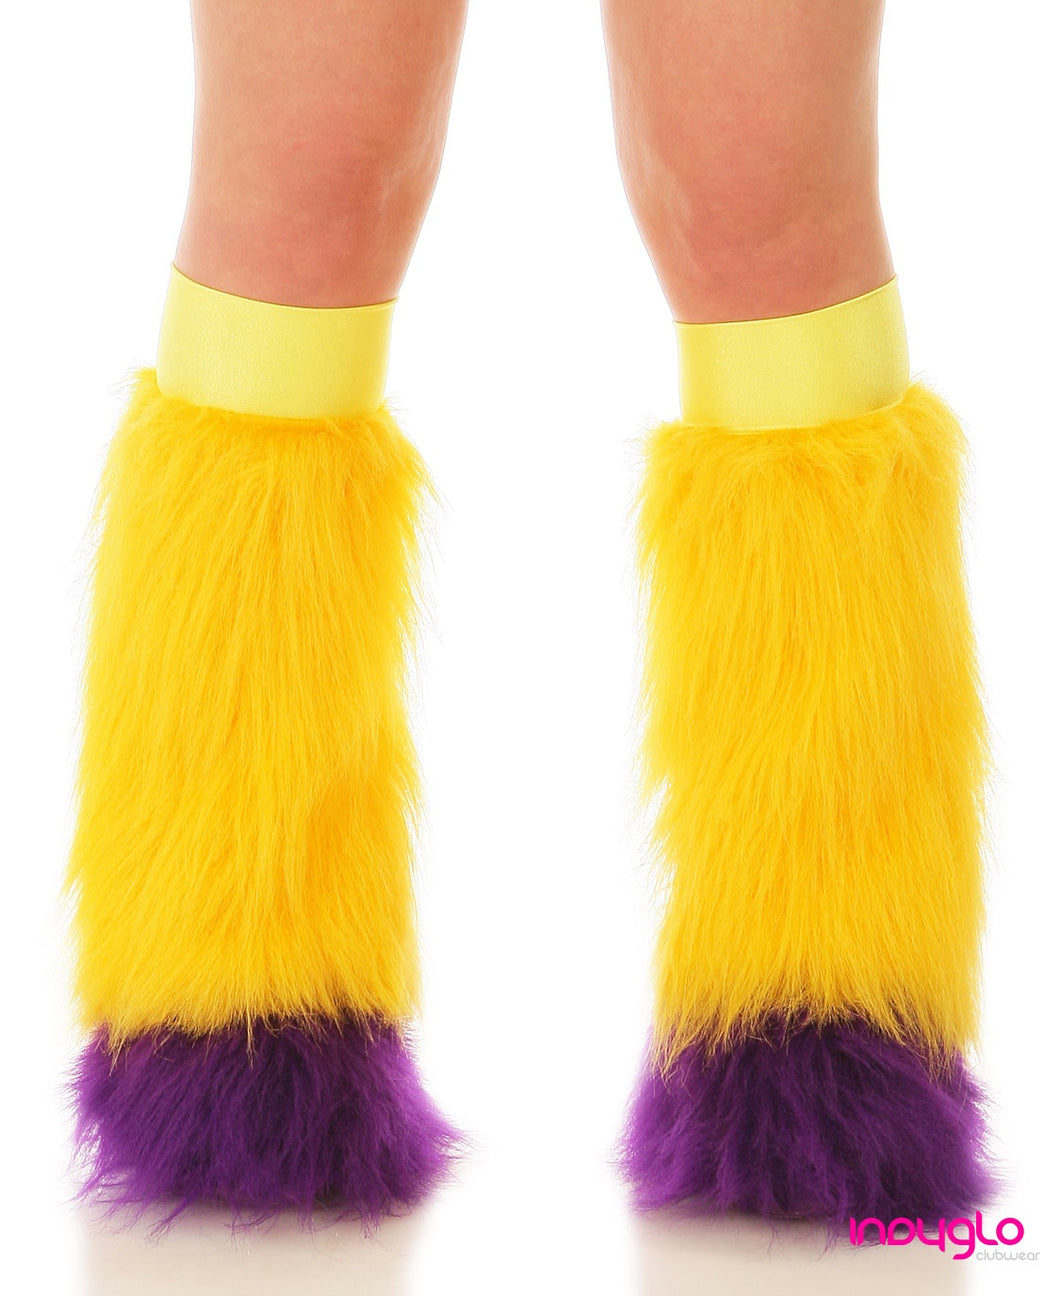 Gold Fluffy Leg Warmers with Purple Tips and Yellow Knee Bands